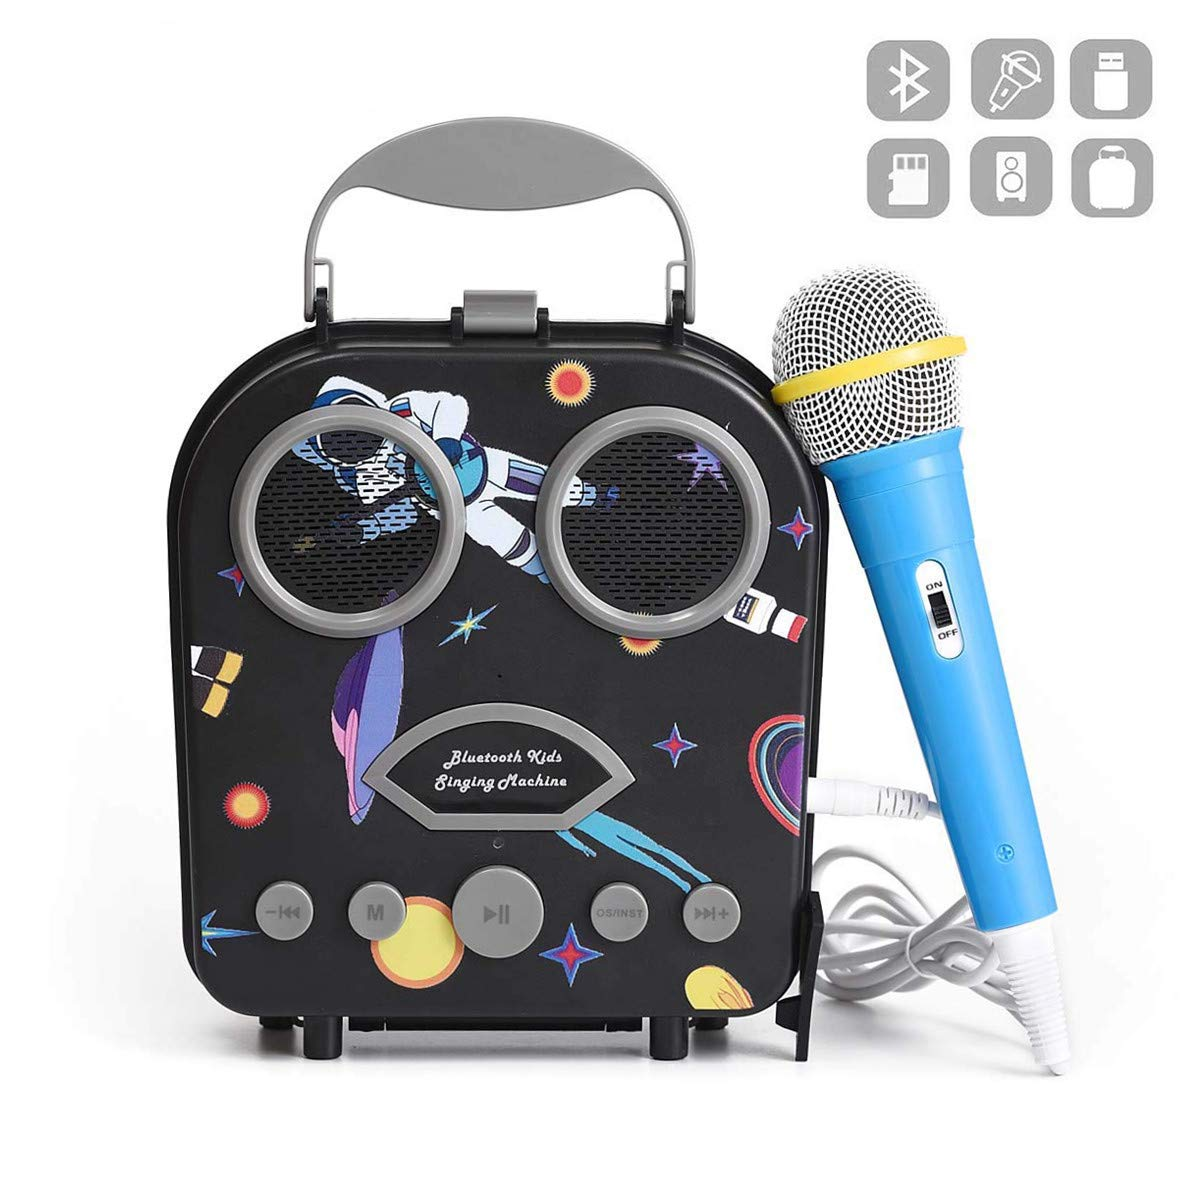 Kids Karaoke Machine with Microphone, Bluetooth Rechargeable Kids Handbag Karaoke Music Player Toy Children MP3 Player Loudspeaker with Microphone (Handbag Black) by Kidsonor (Image #1)